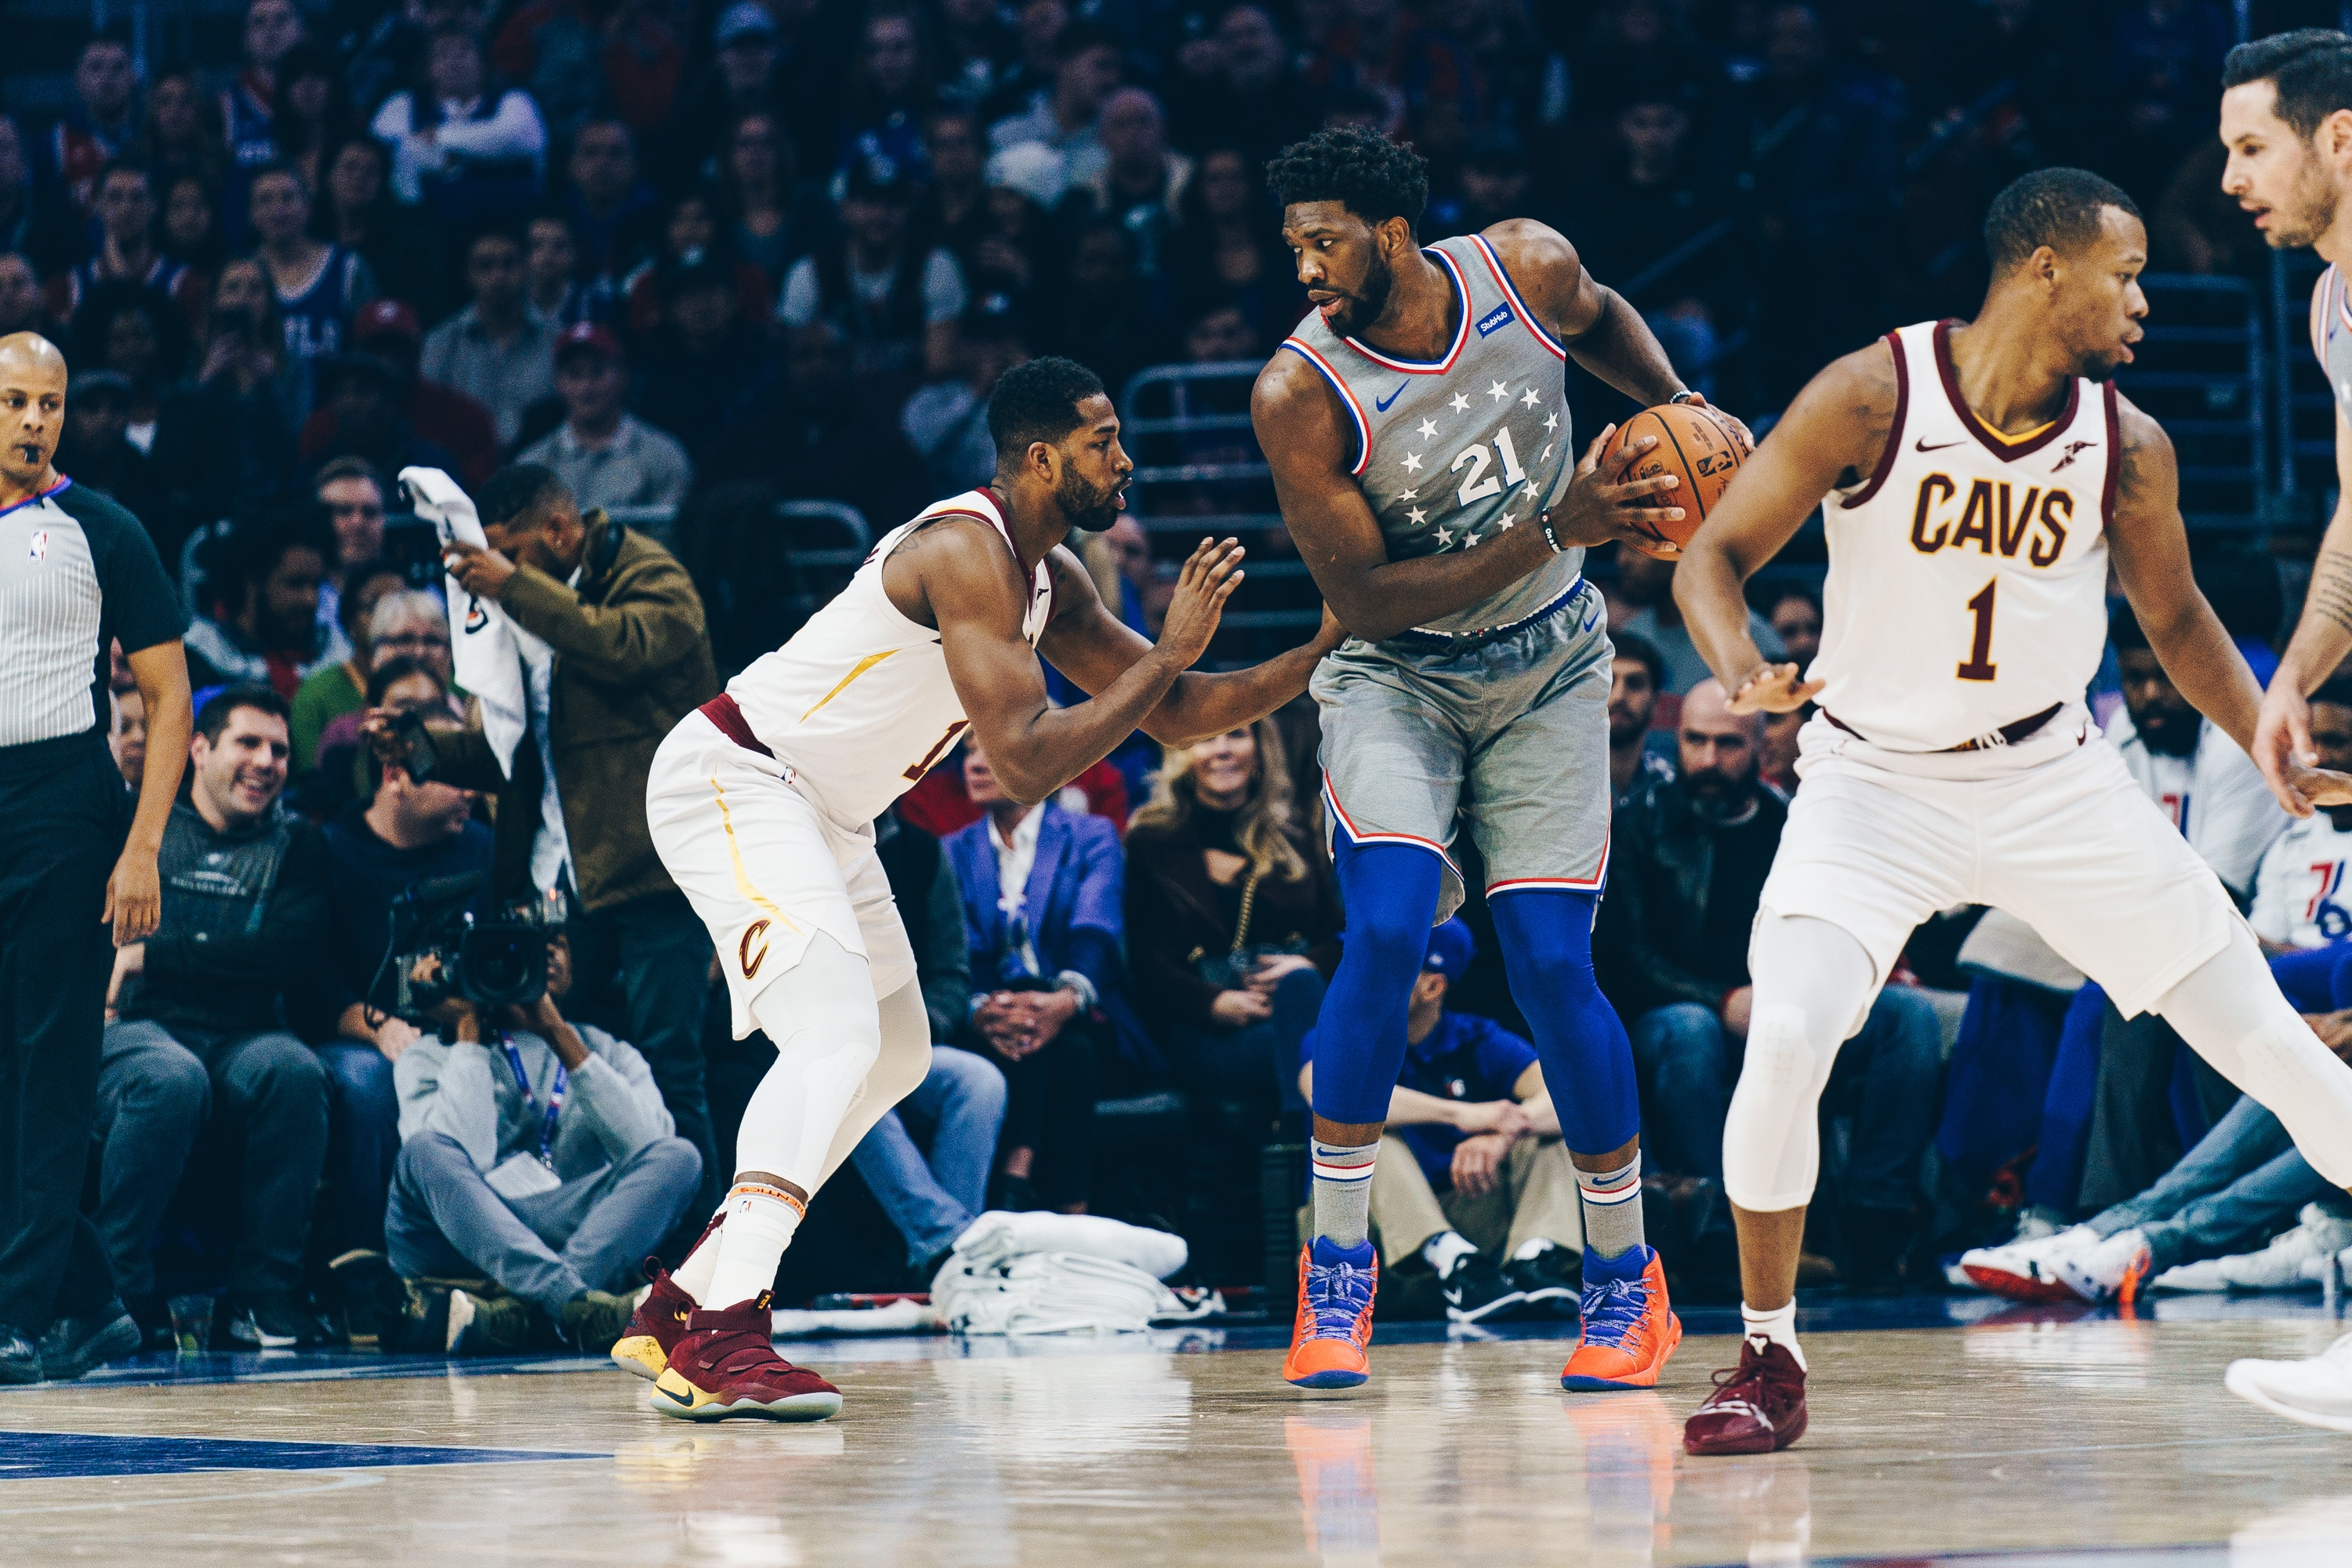 Lakers Vs Cavaliers 2019 >> Photos | 76ers vs Cavaliers (11.23.18) | Philadelphia 76ers